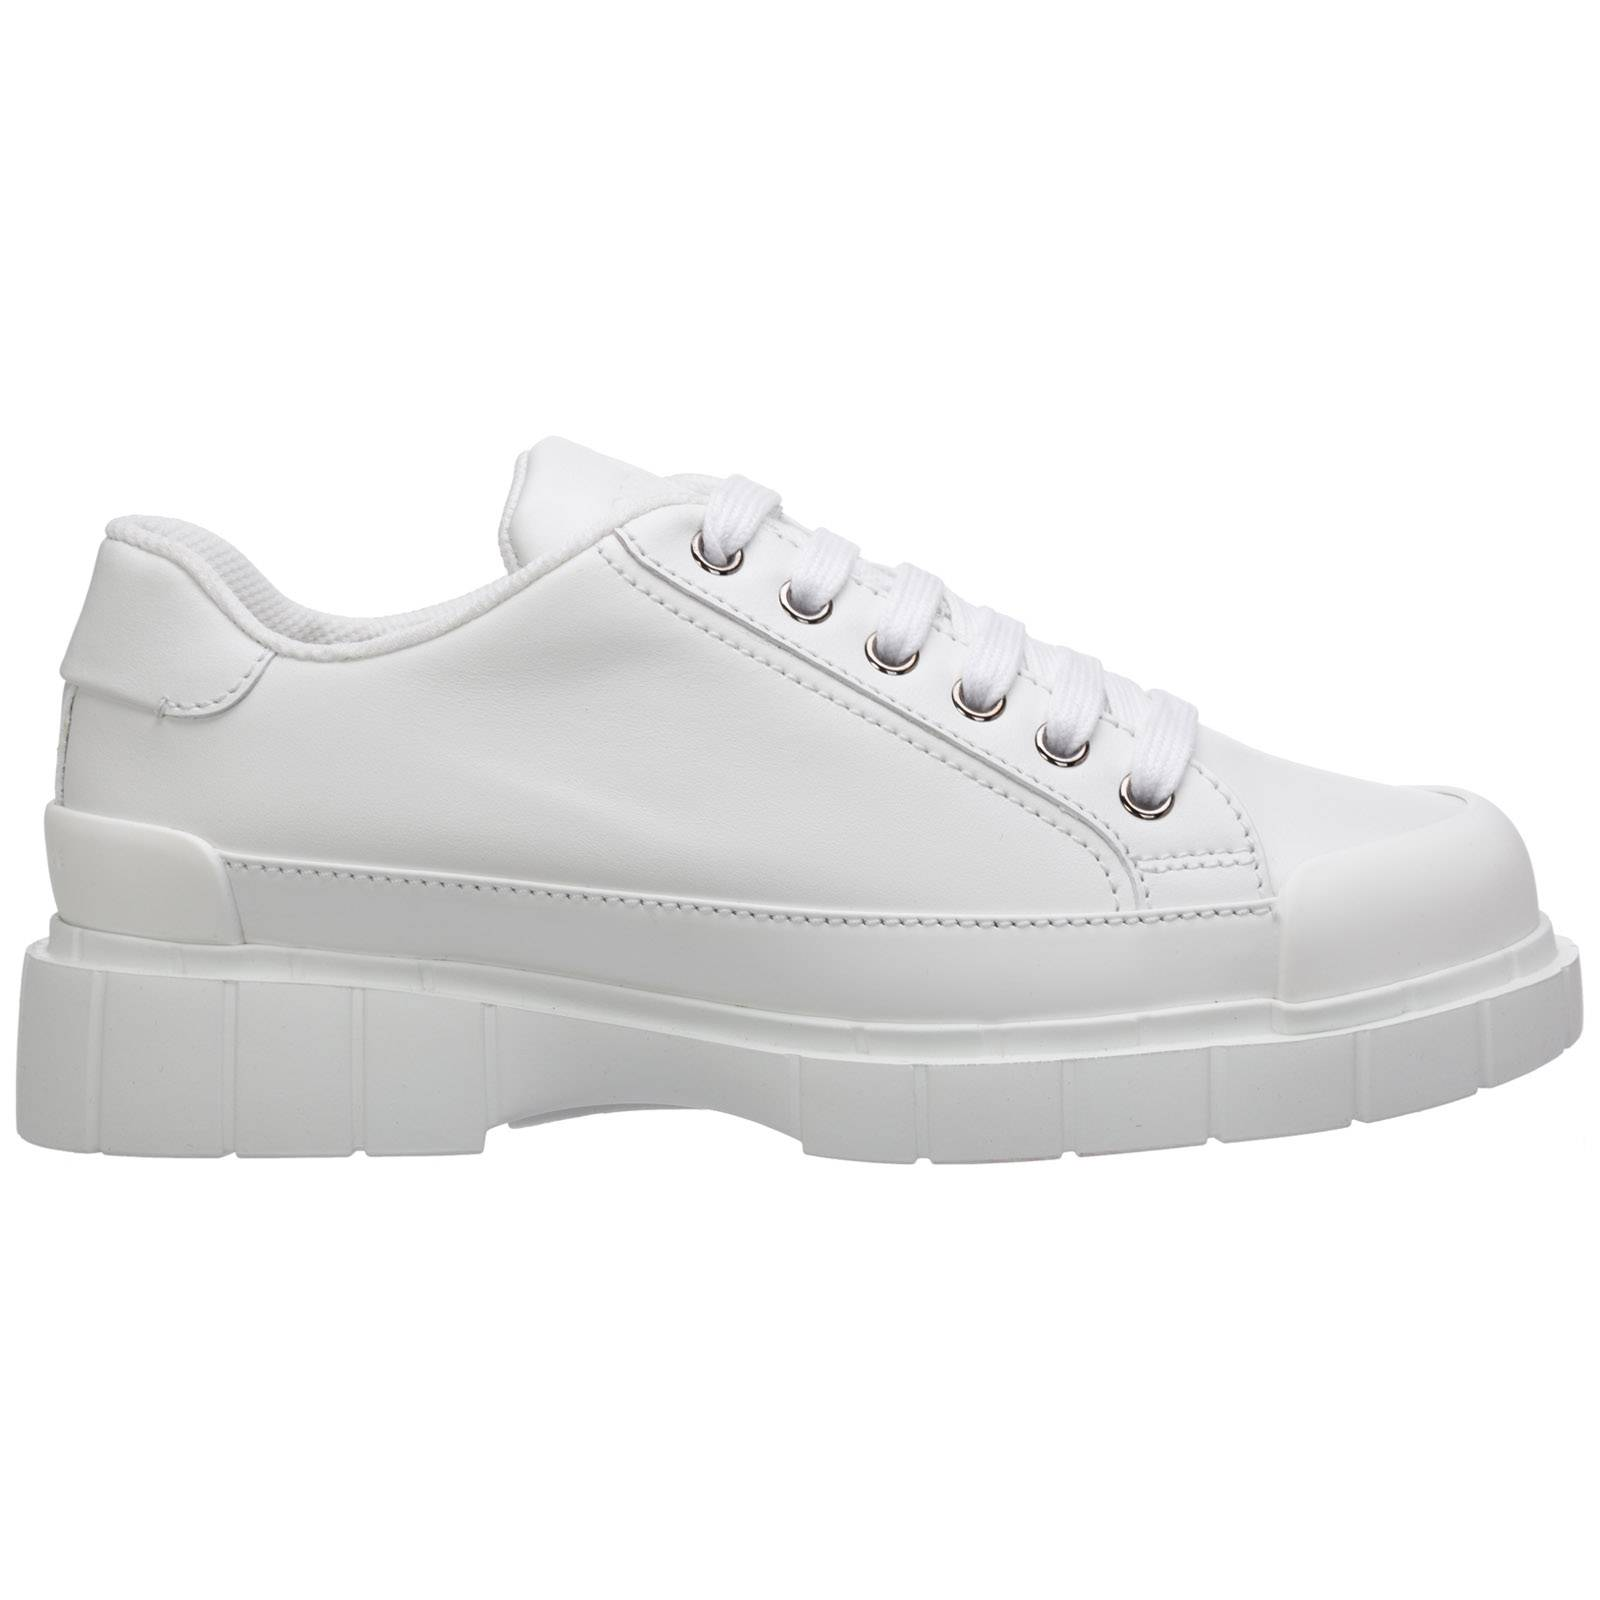 Car Shoe Women's shoes leather trainers sneakers  - White - Size: 38.5